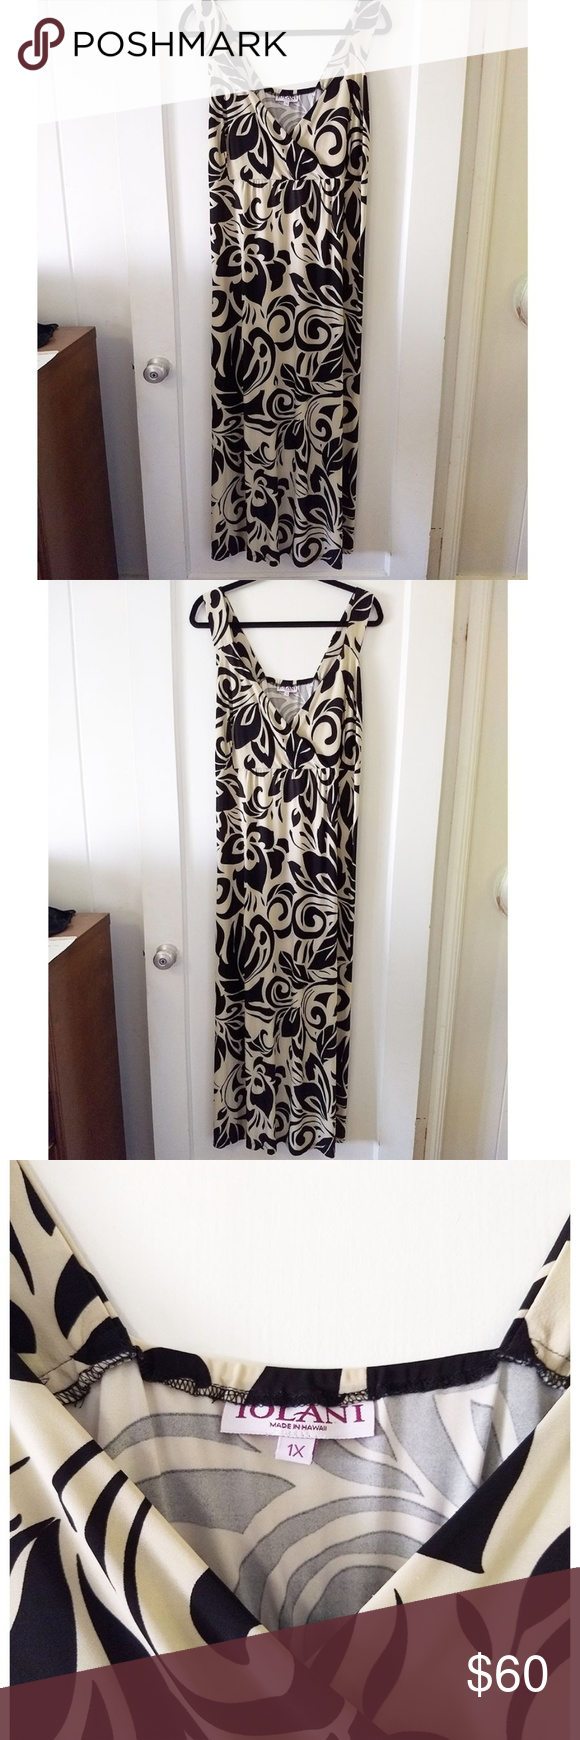 ddf548f4c799 Black print on a beige/nude background. Very lightweight, smooth and  stretchy material. Empire waist with elastic. Iolani Dresses Maxi